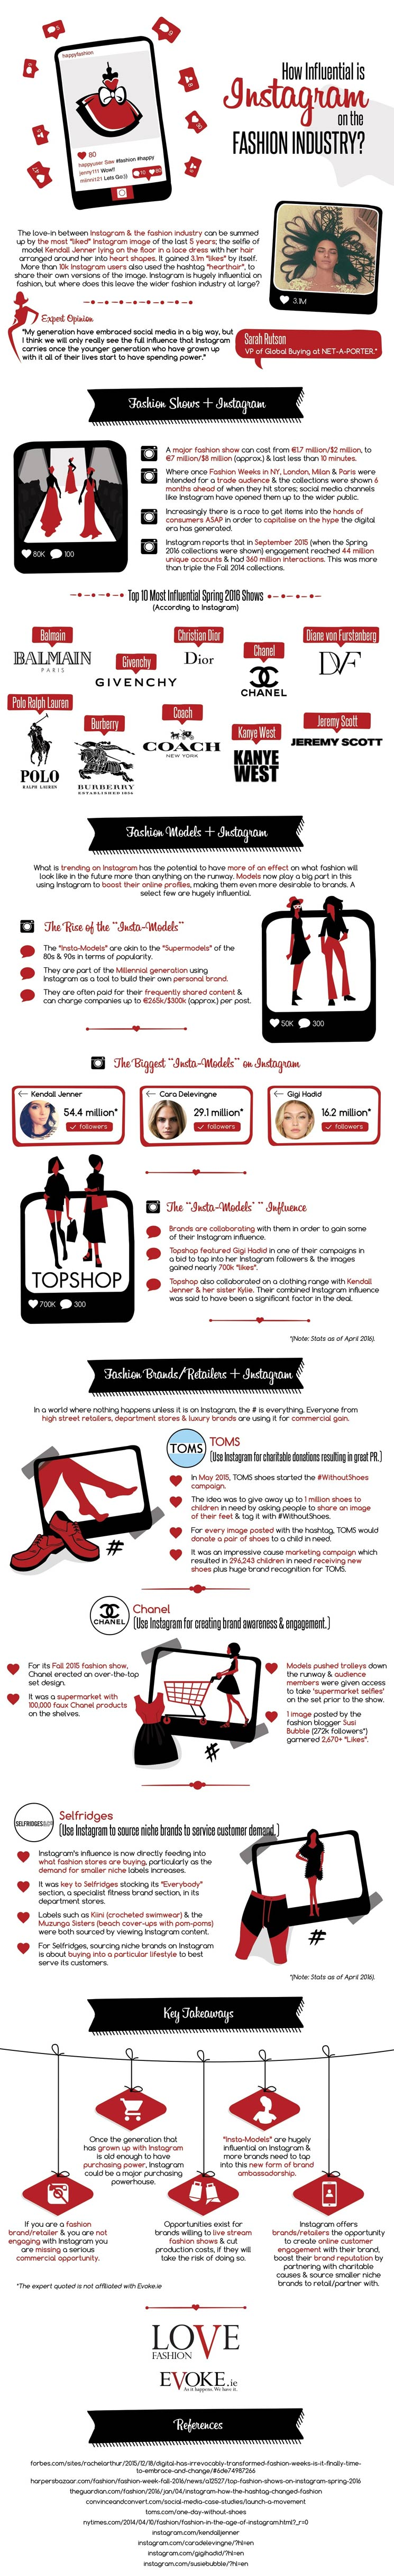 how-influential-is-instagram-on-the-fashion-industry-infographic